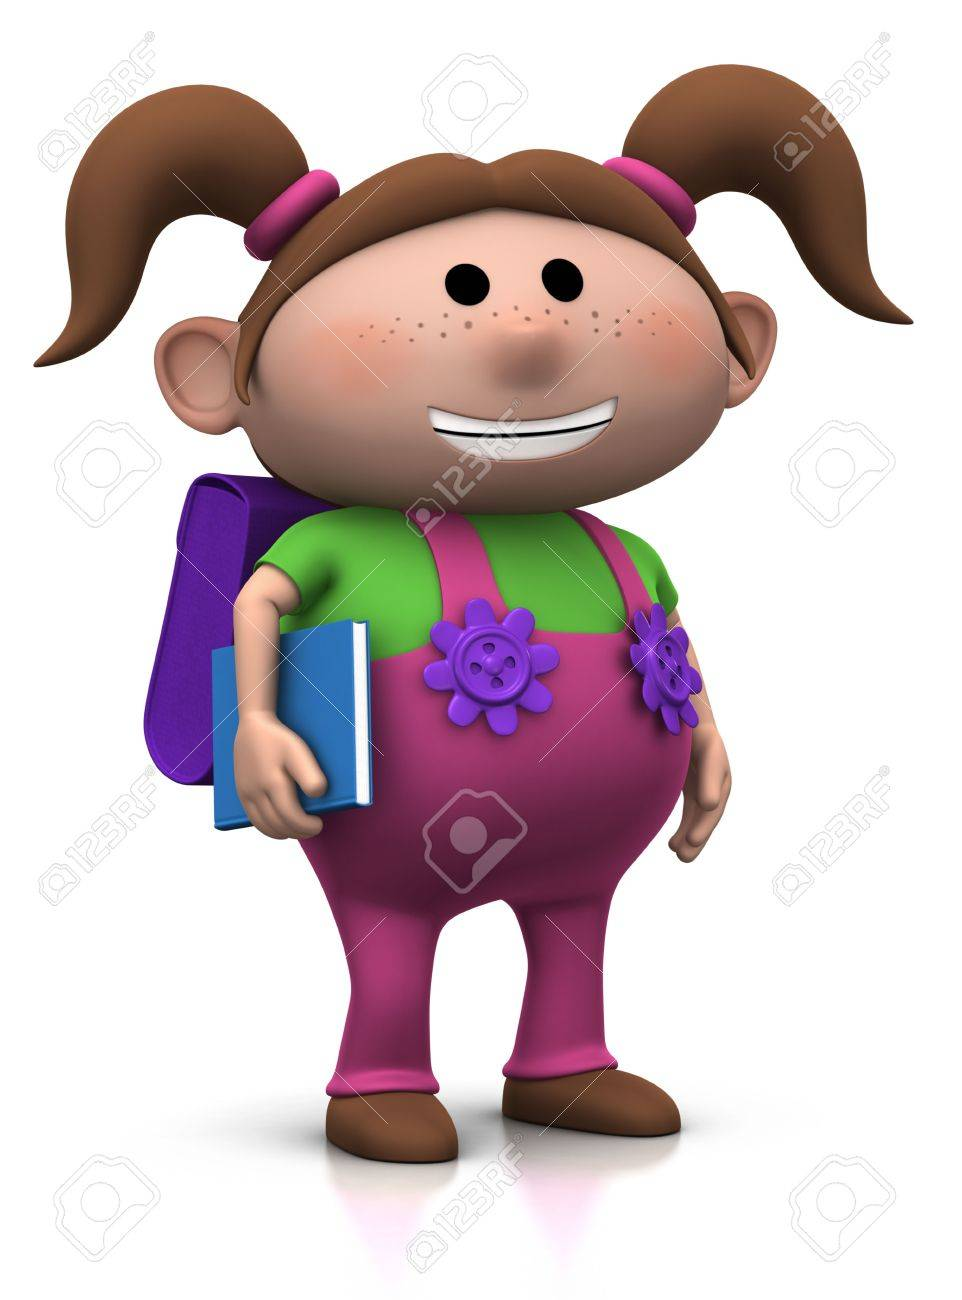 cute brownhaired girl with a satchel on her back and book under her arm - 3d rendering/illustration Stock Photo - 7583938